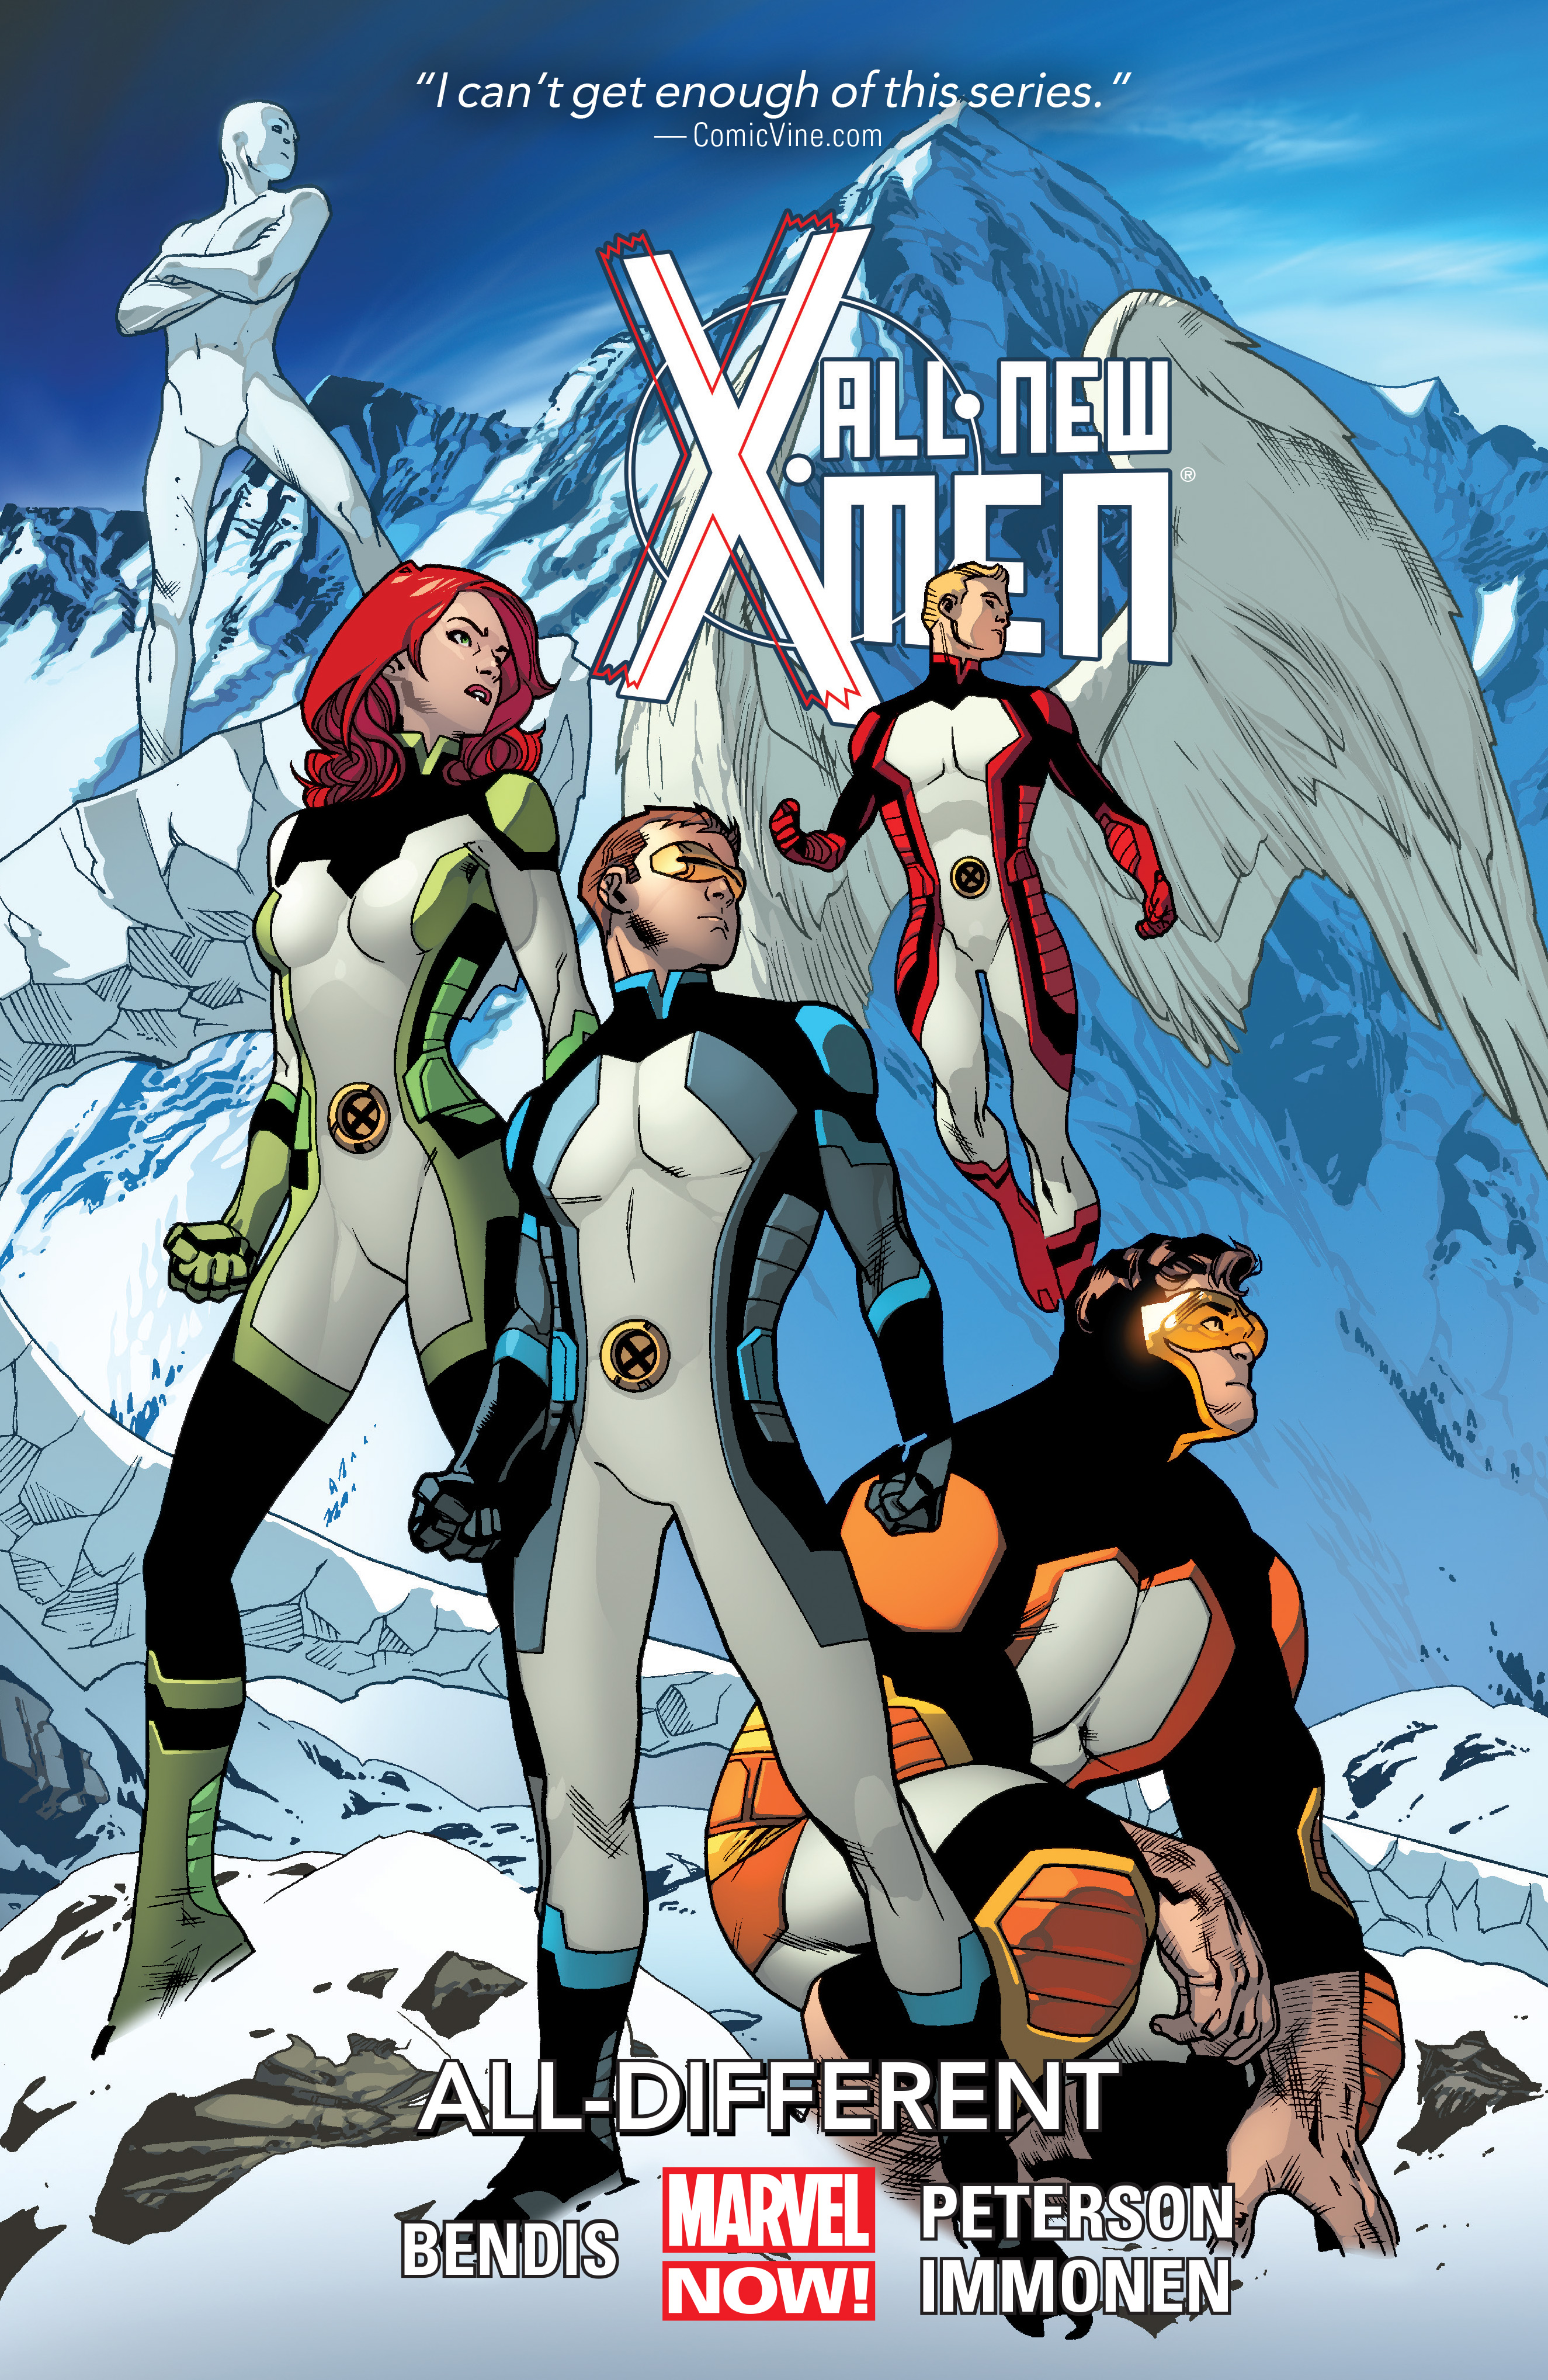 All-New X-Men Vol. 4: All-Different [electronic resource]